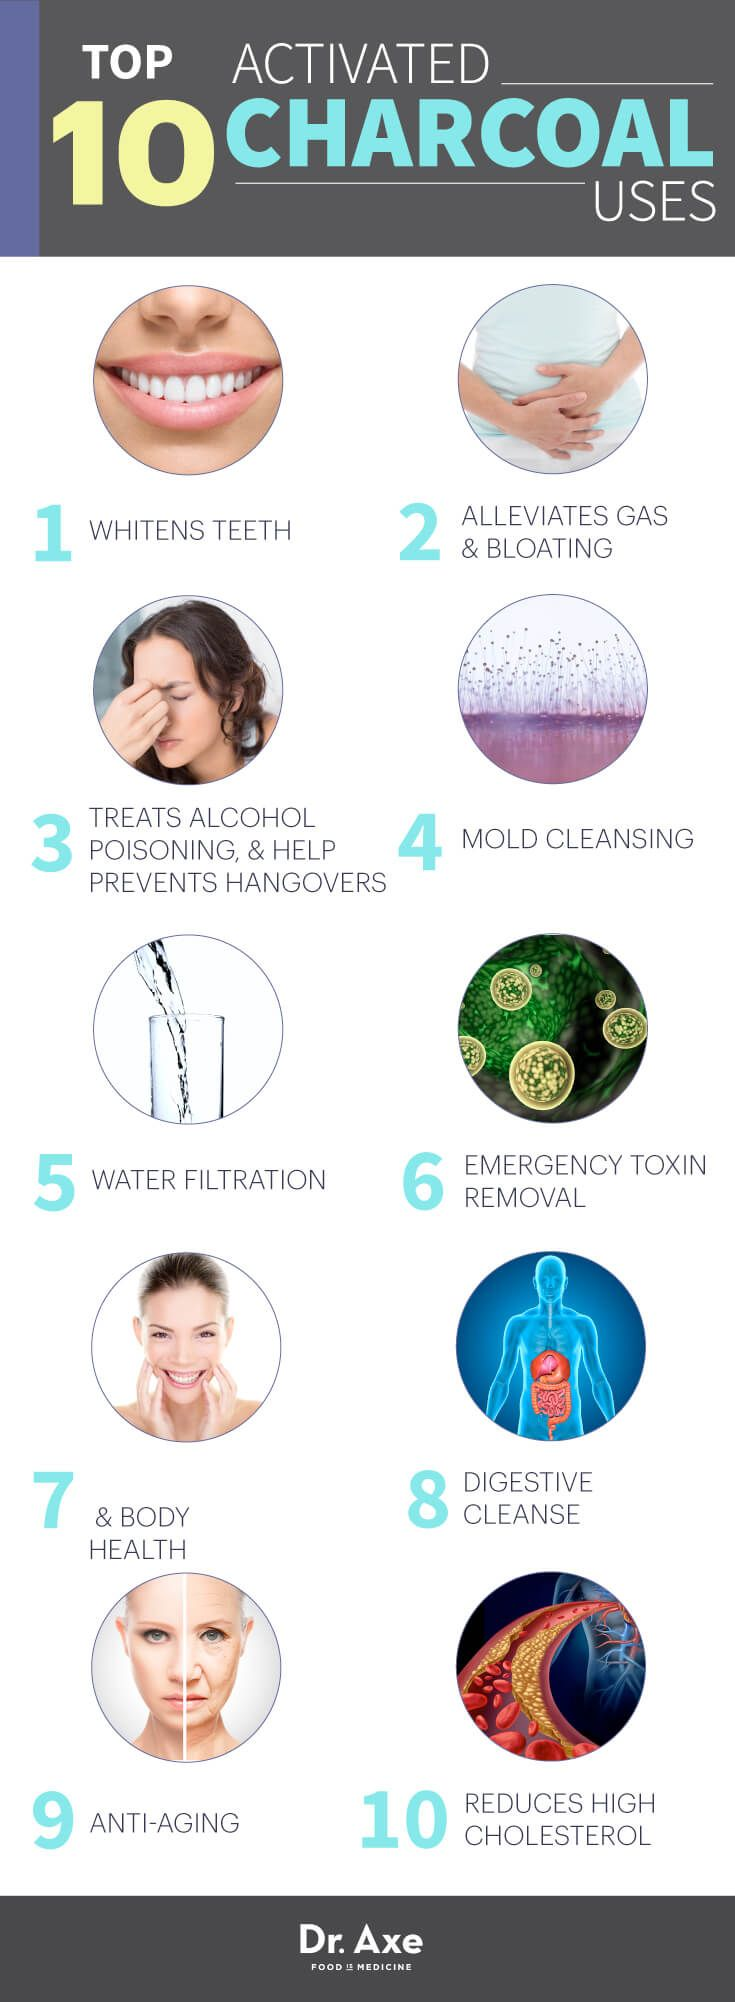 As needed, for teeth whitening and toxin reduction.   Activated Charcoal Uses list infographic